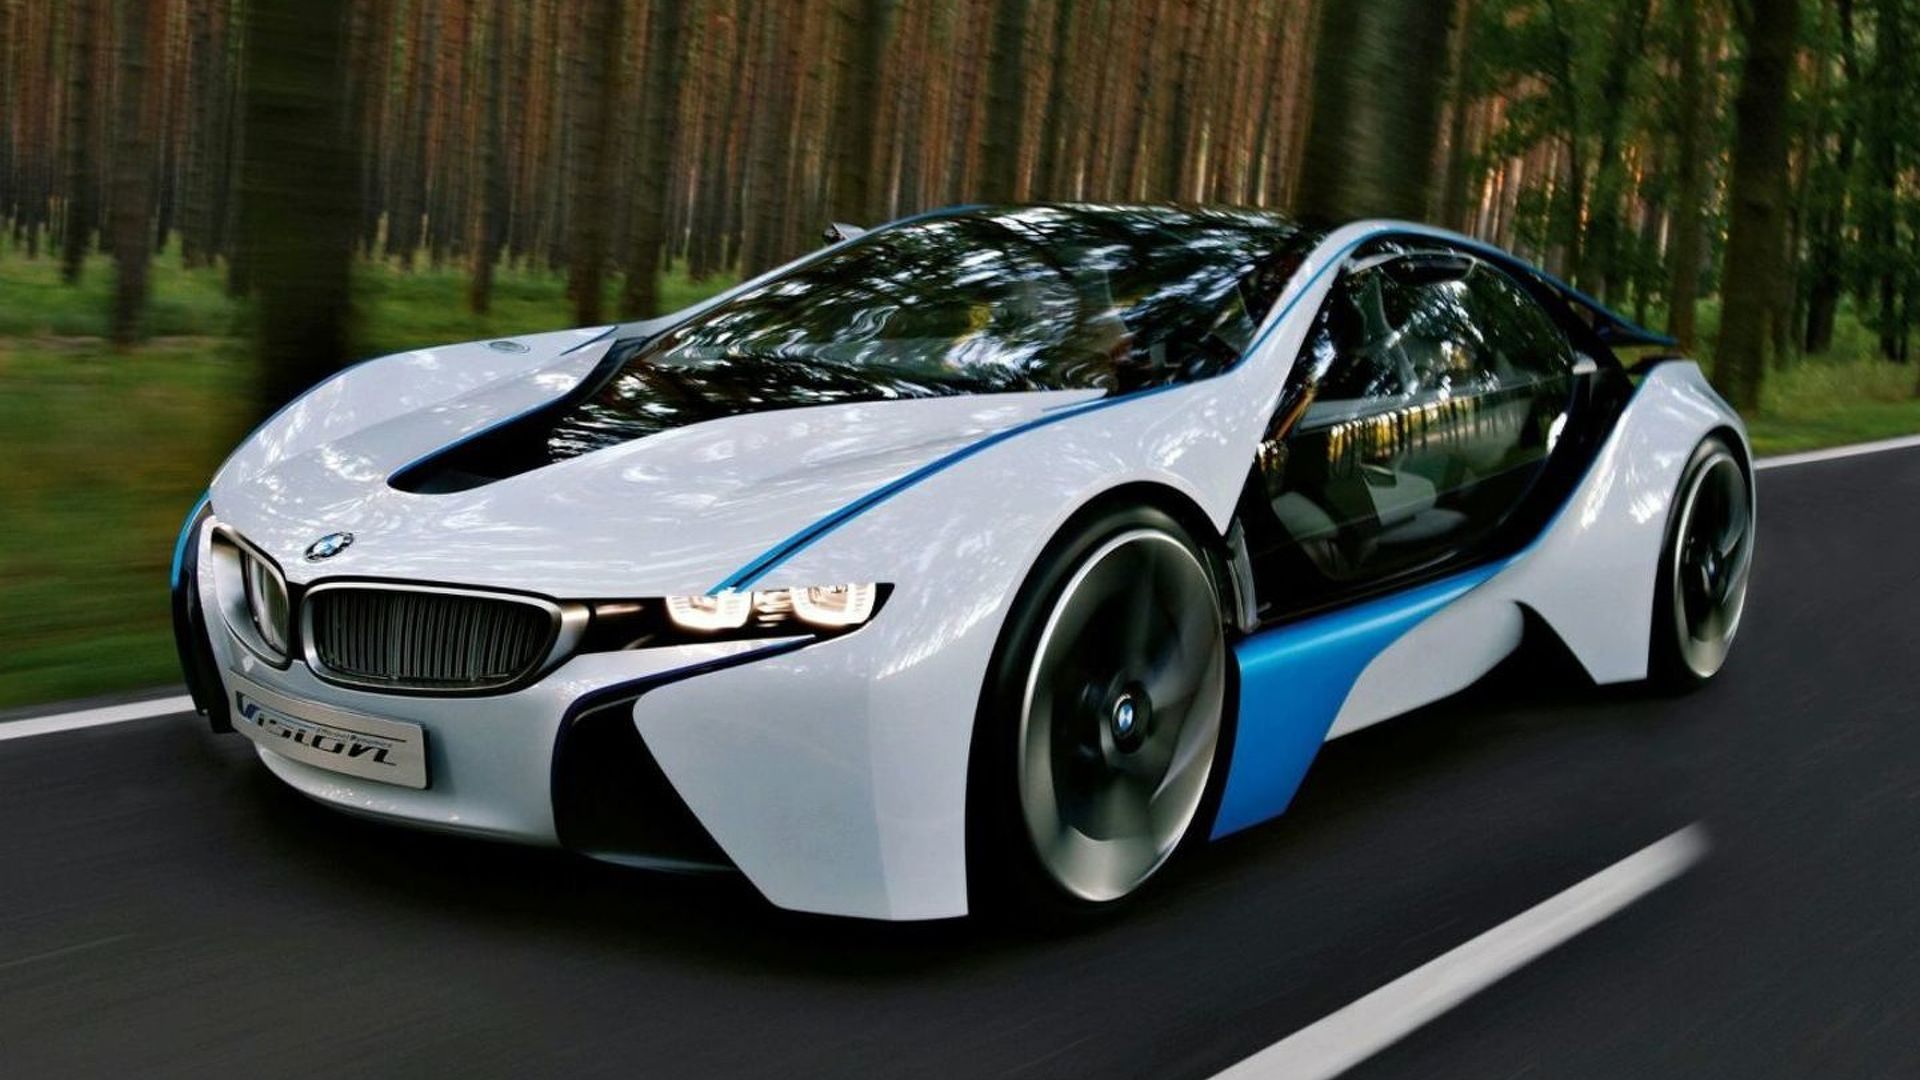 WCF's Top 10 Concept Cars of 2009